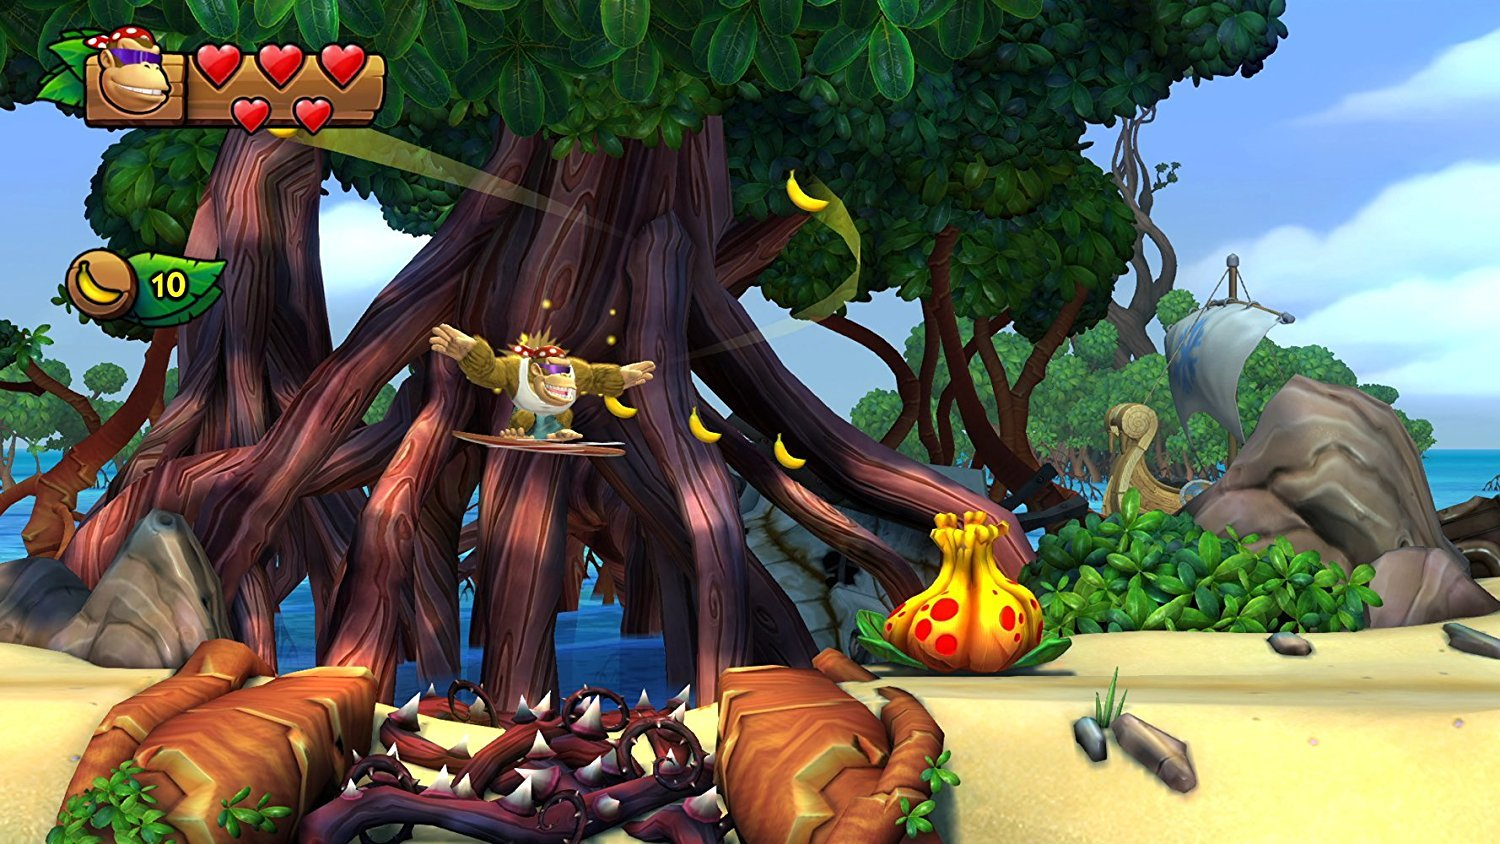 Donkey Kong Country: Tropical Freeze seems to check out at 1080p, 60 frames-per-second screenshot